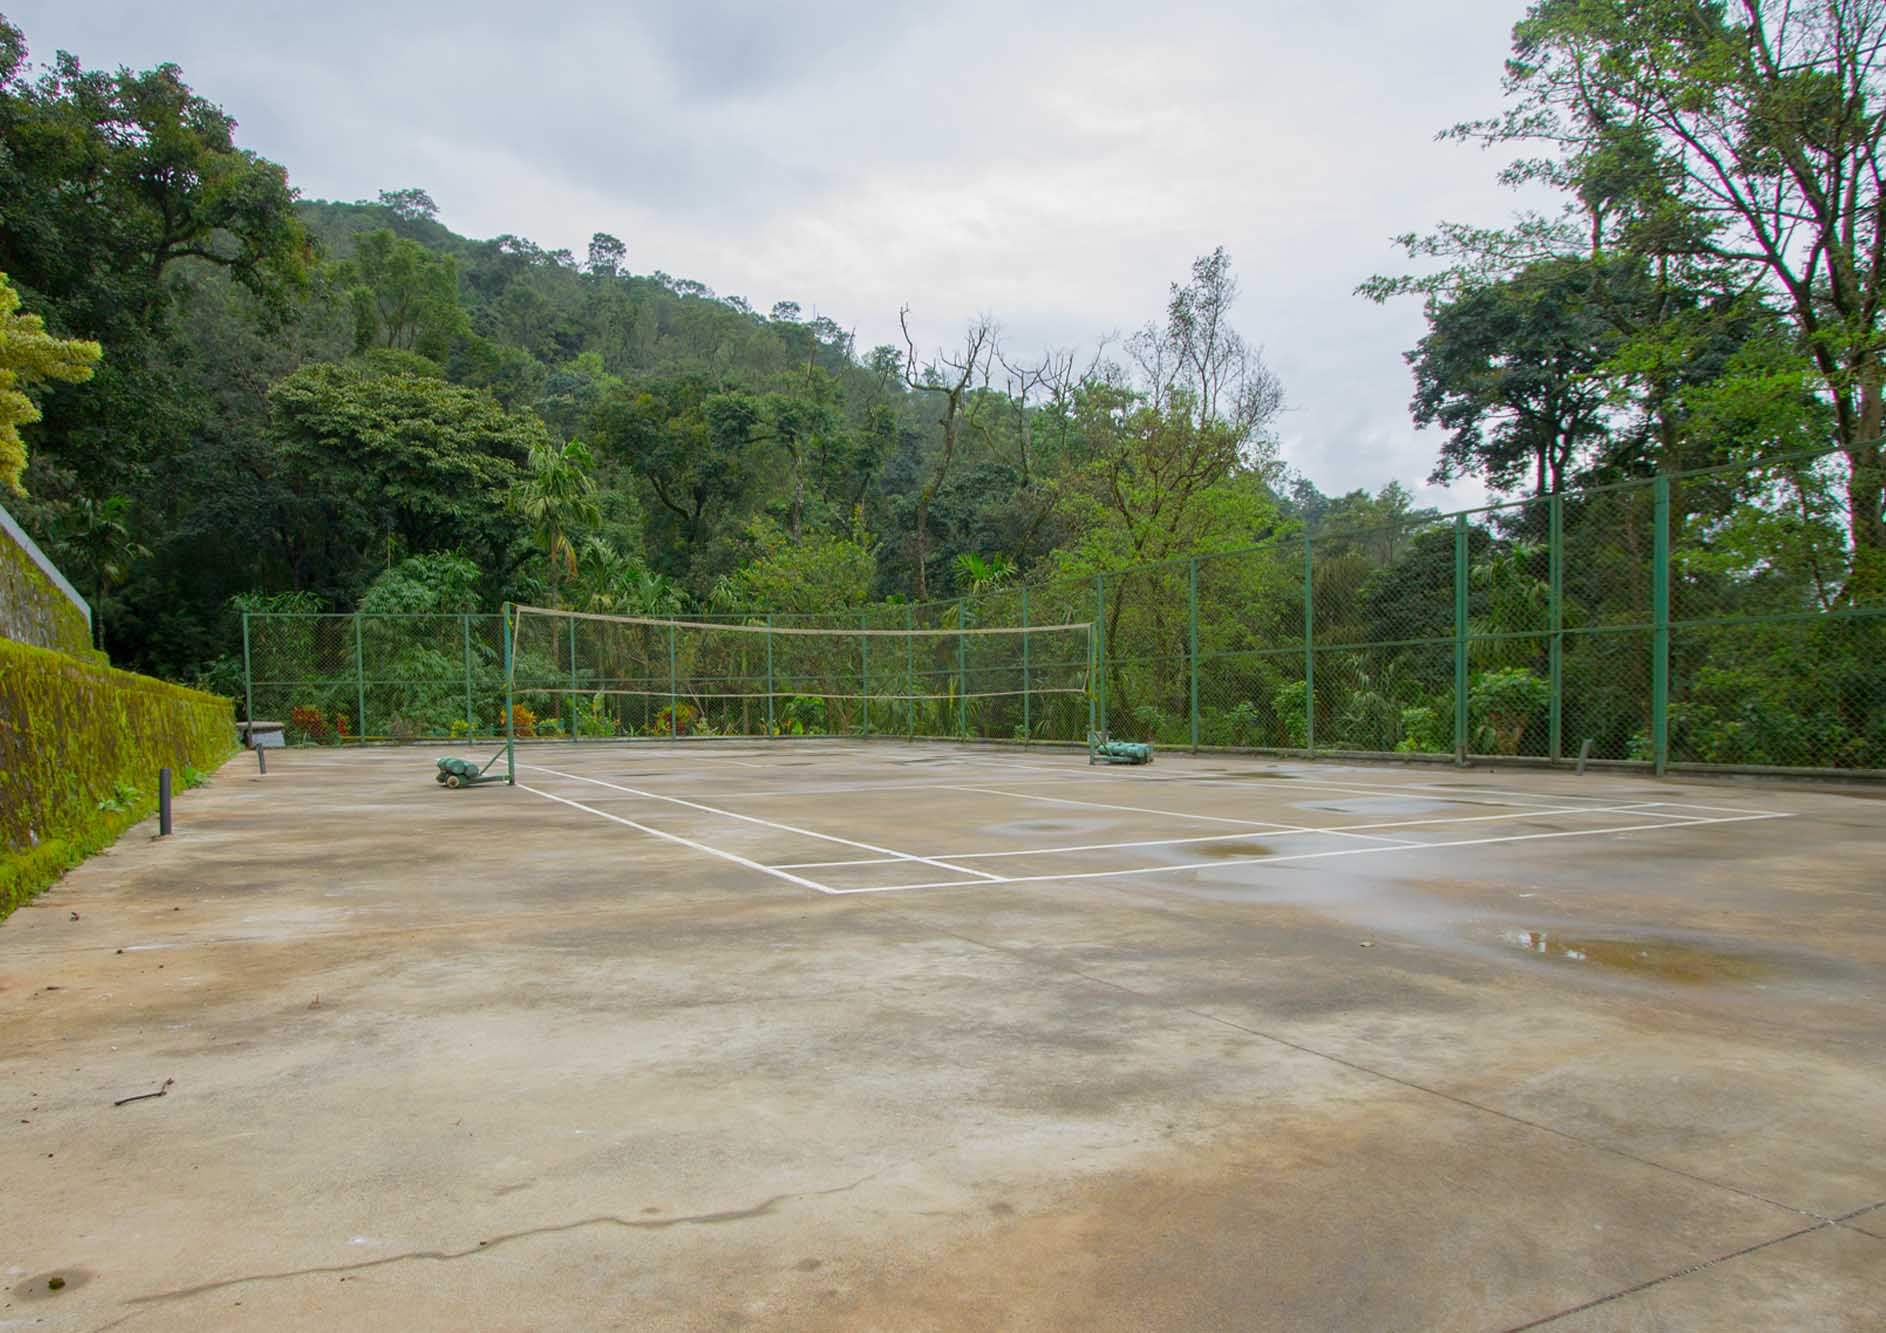 volleyball-court-in-nature-at-the-tarama-coorg